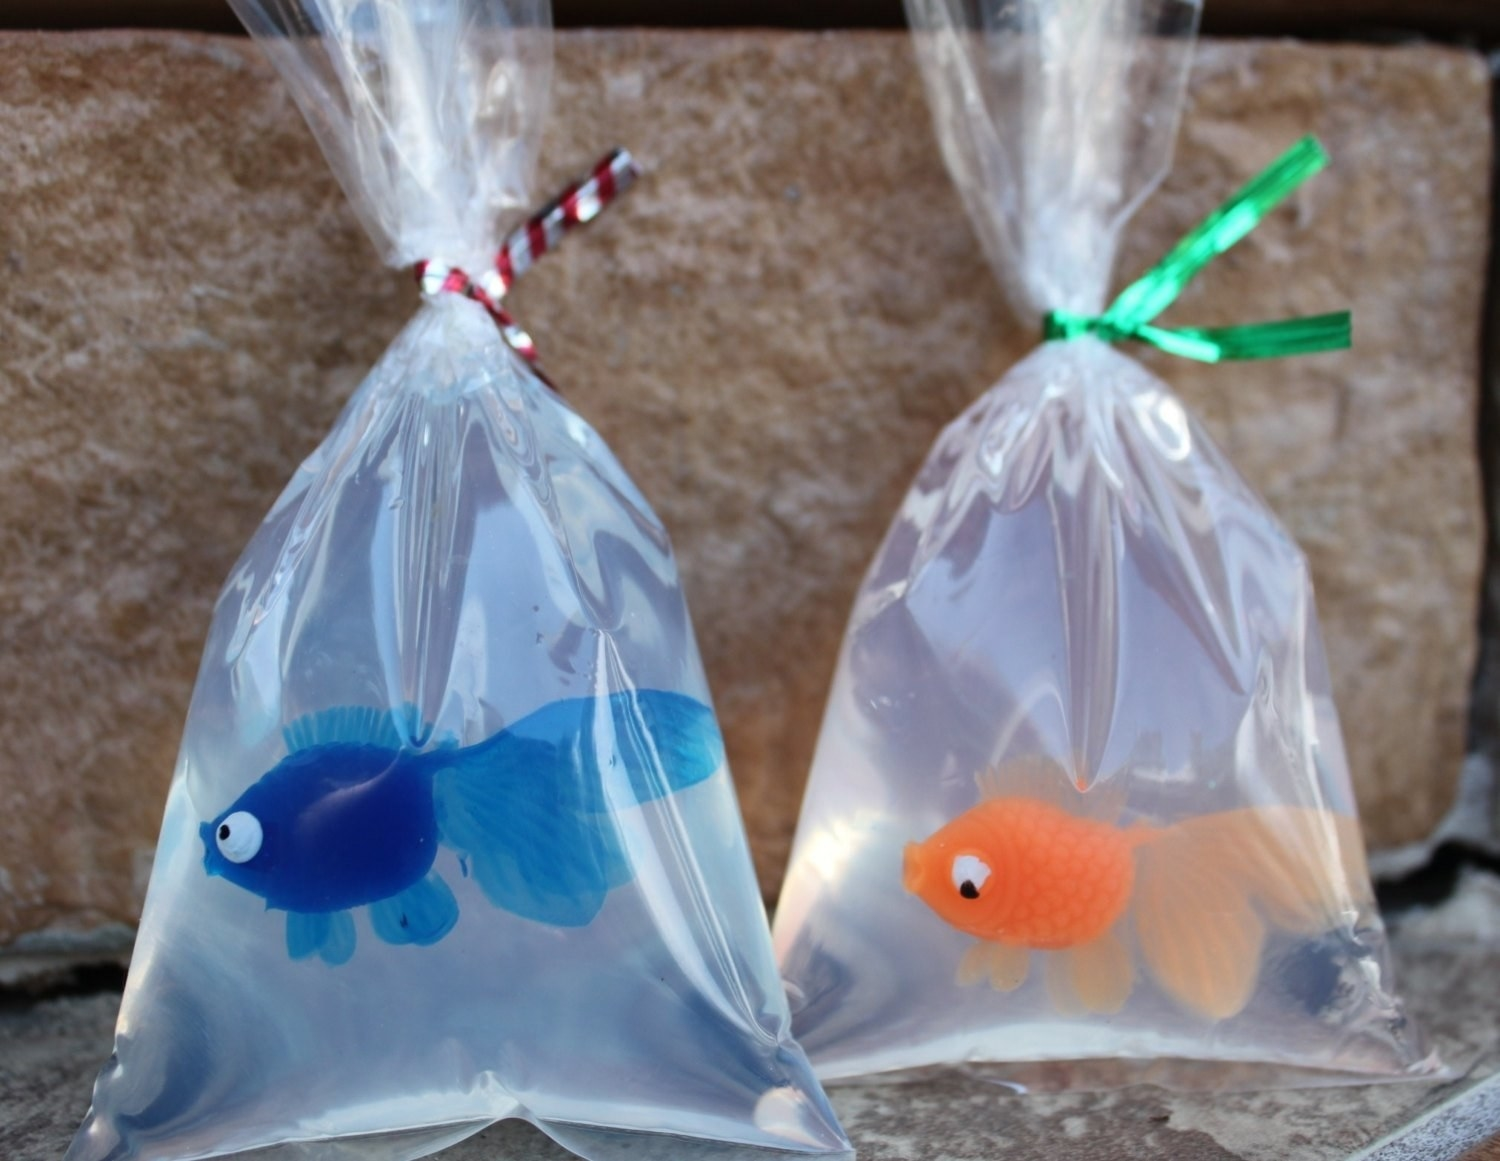 Two of the goldfish soaps in blue and orange